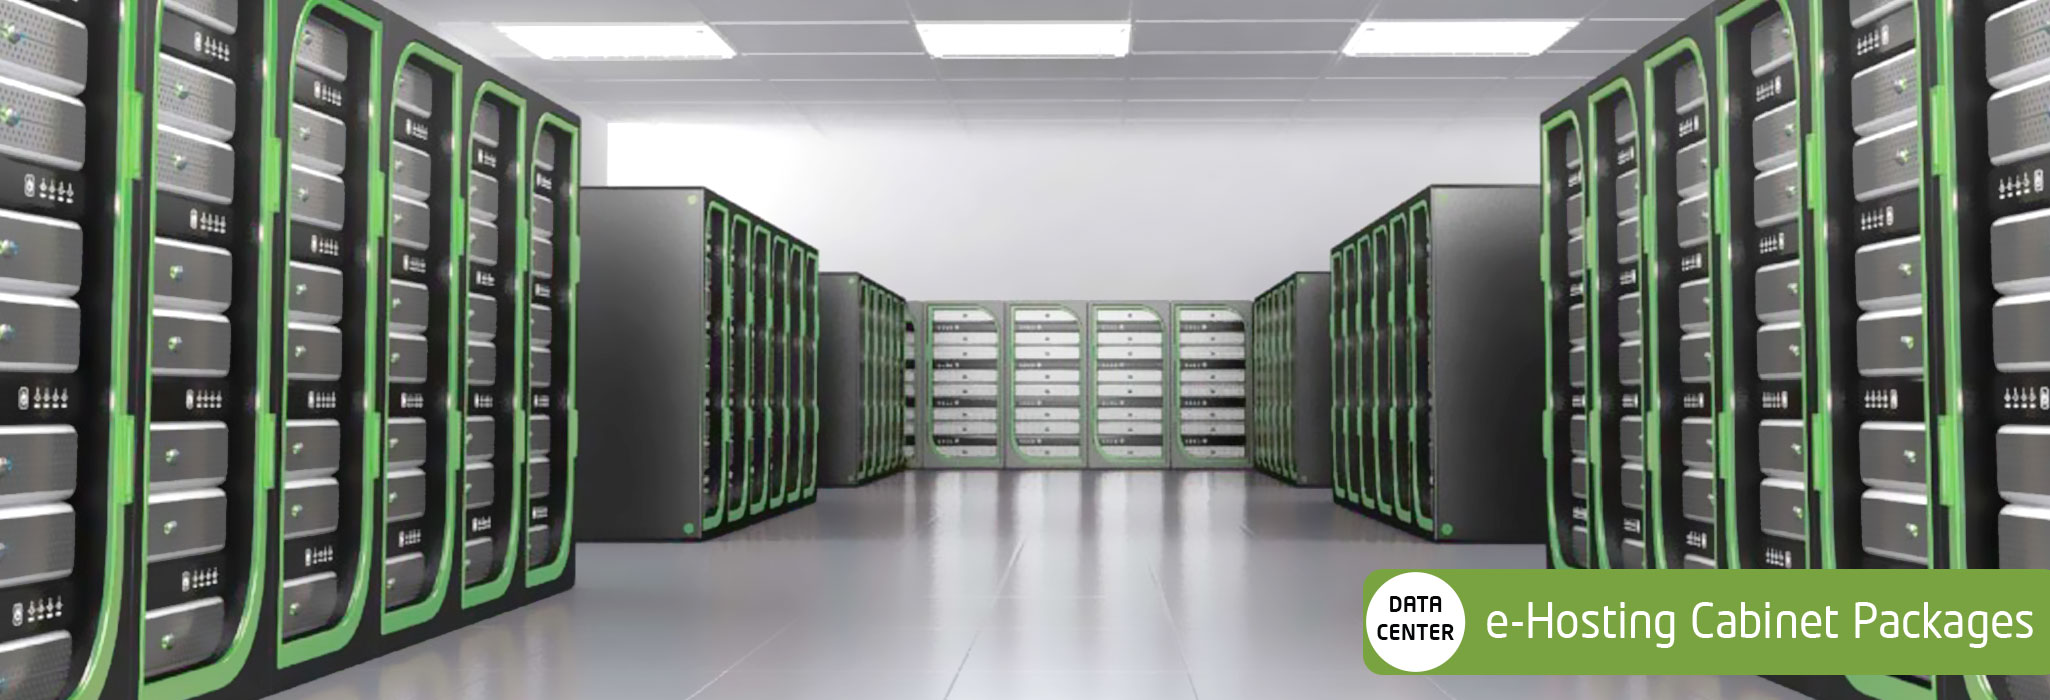 Etisalat eHosting Cabinet Packages